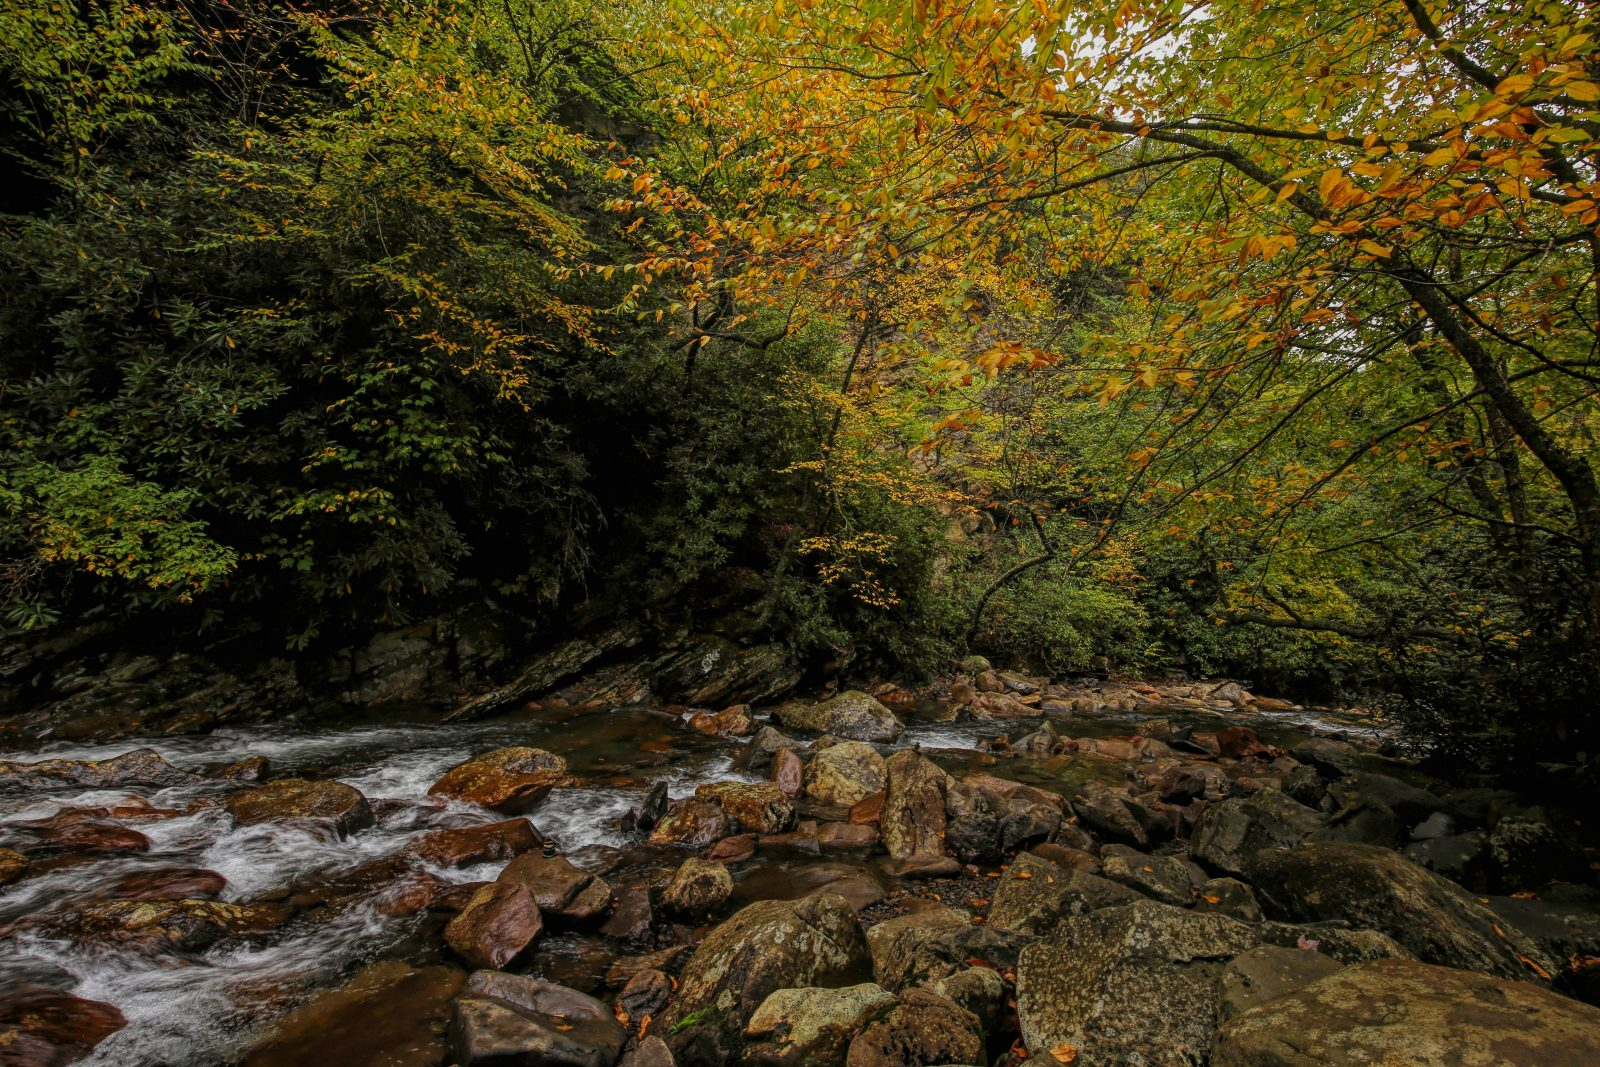 Smoky Mountain Rapids and Fall Colors